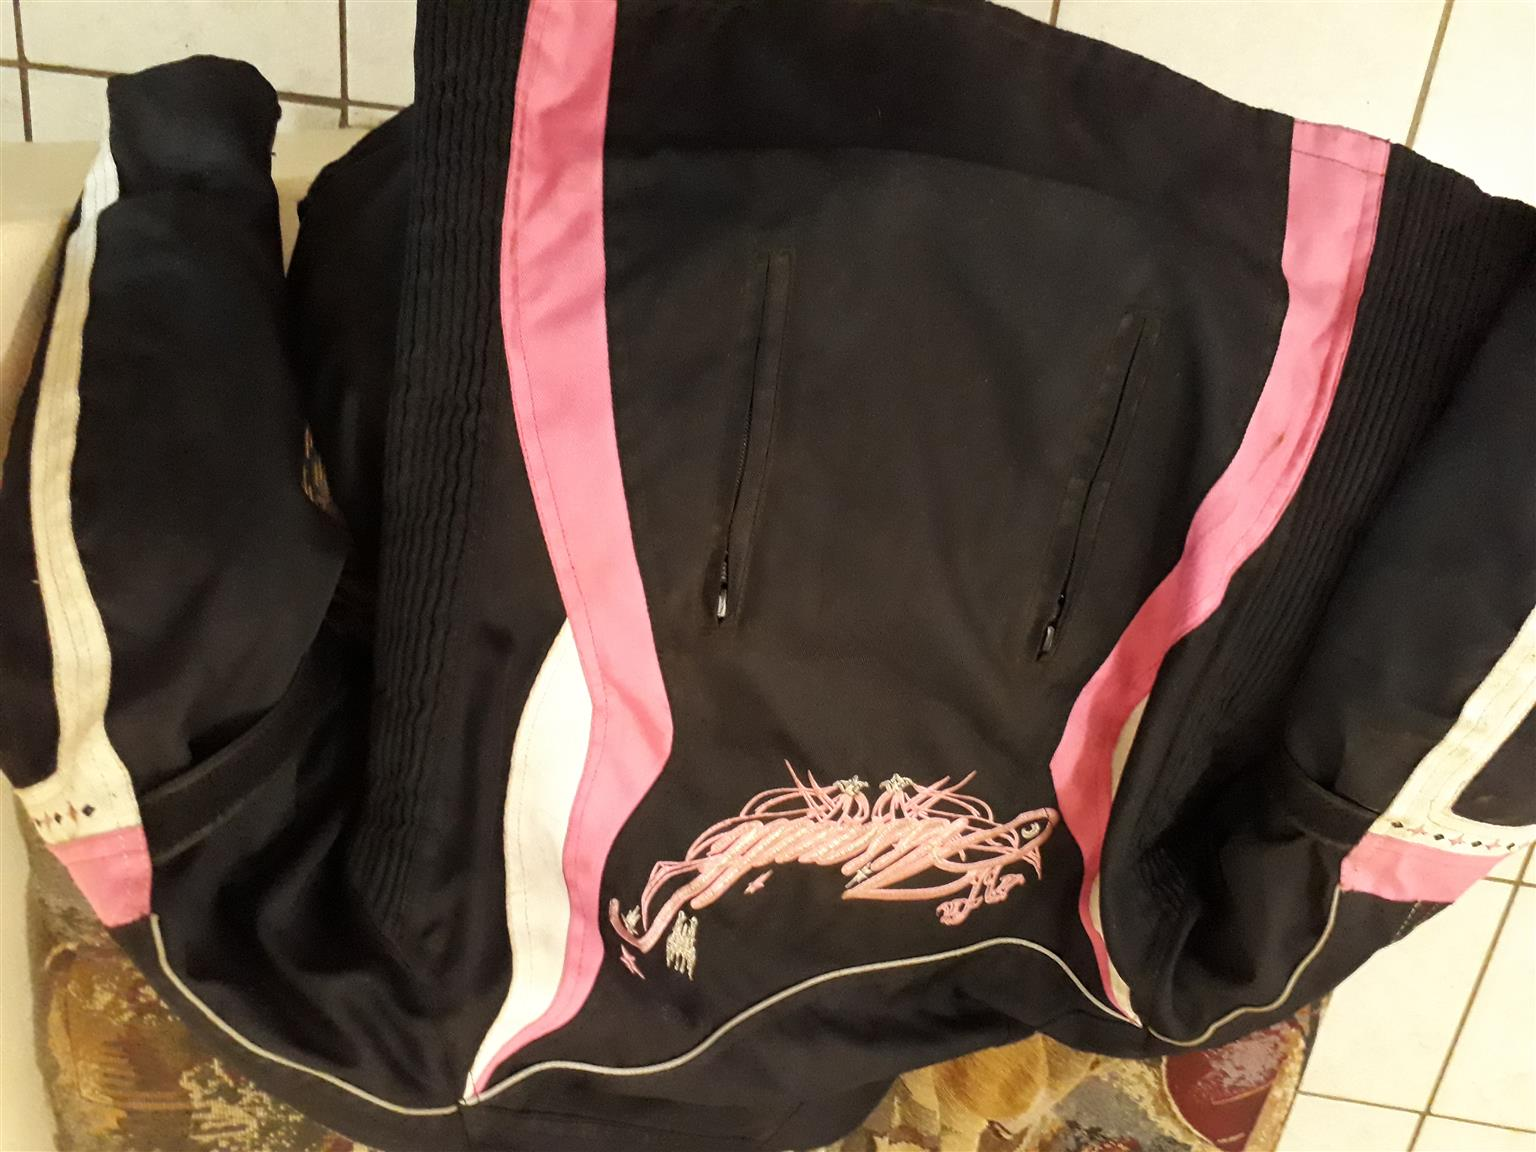 Assault ladies biker jacket for sale